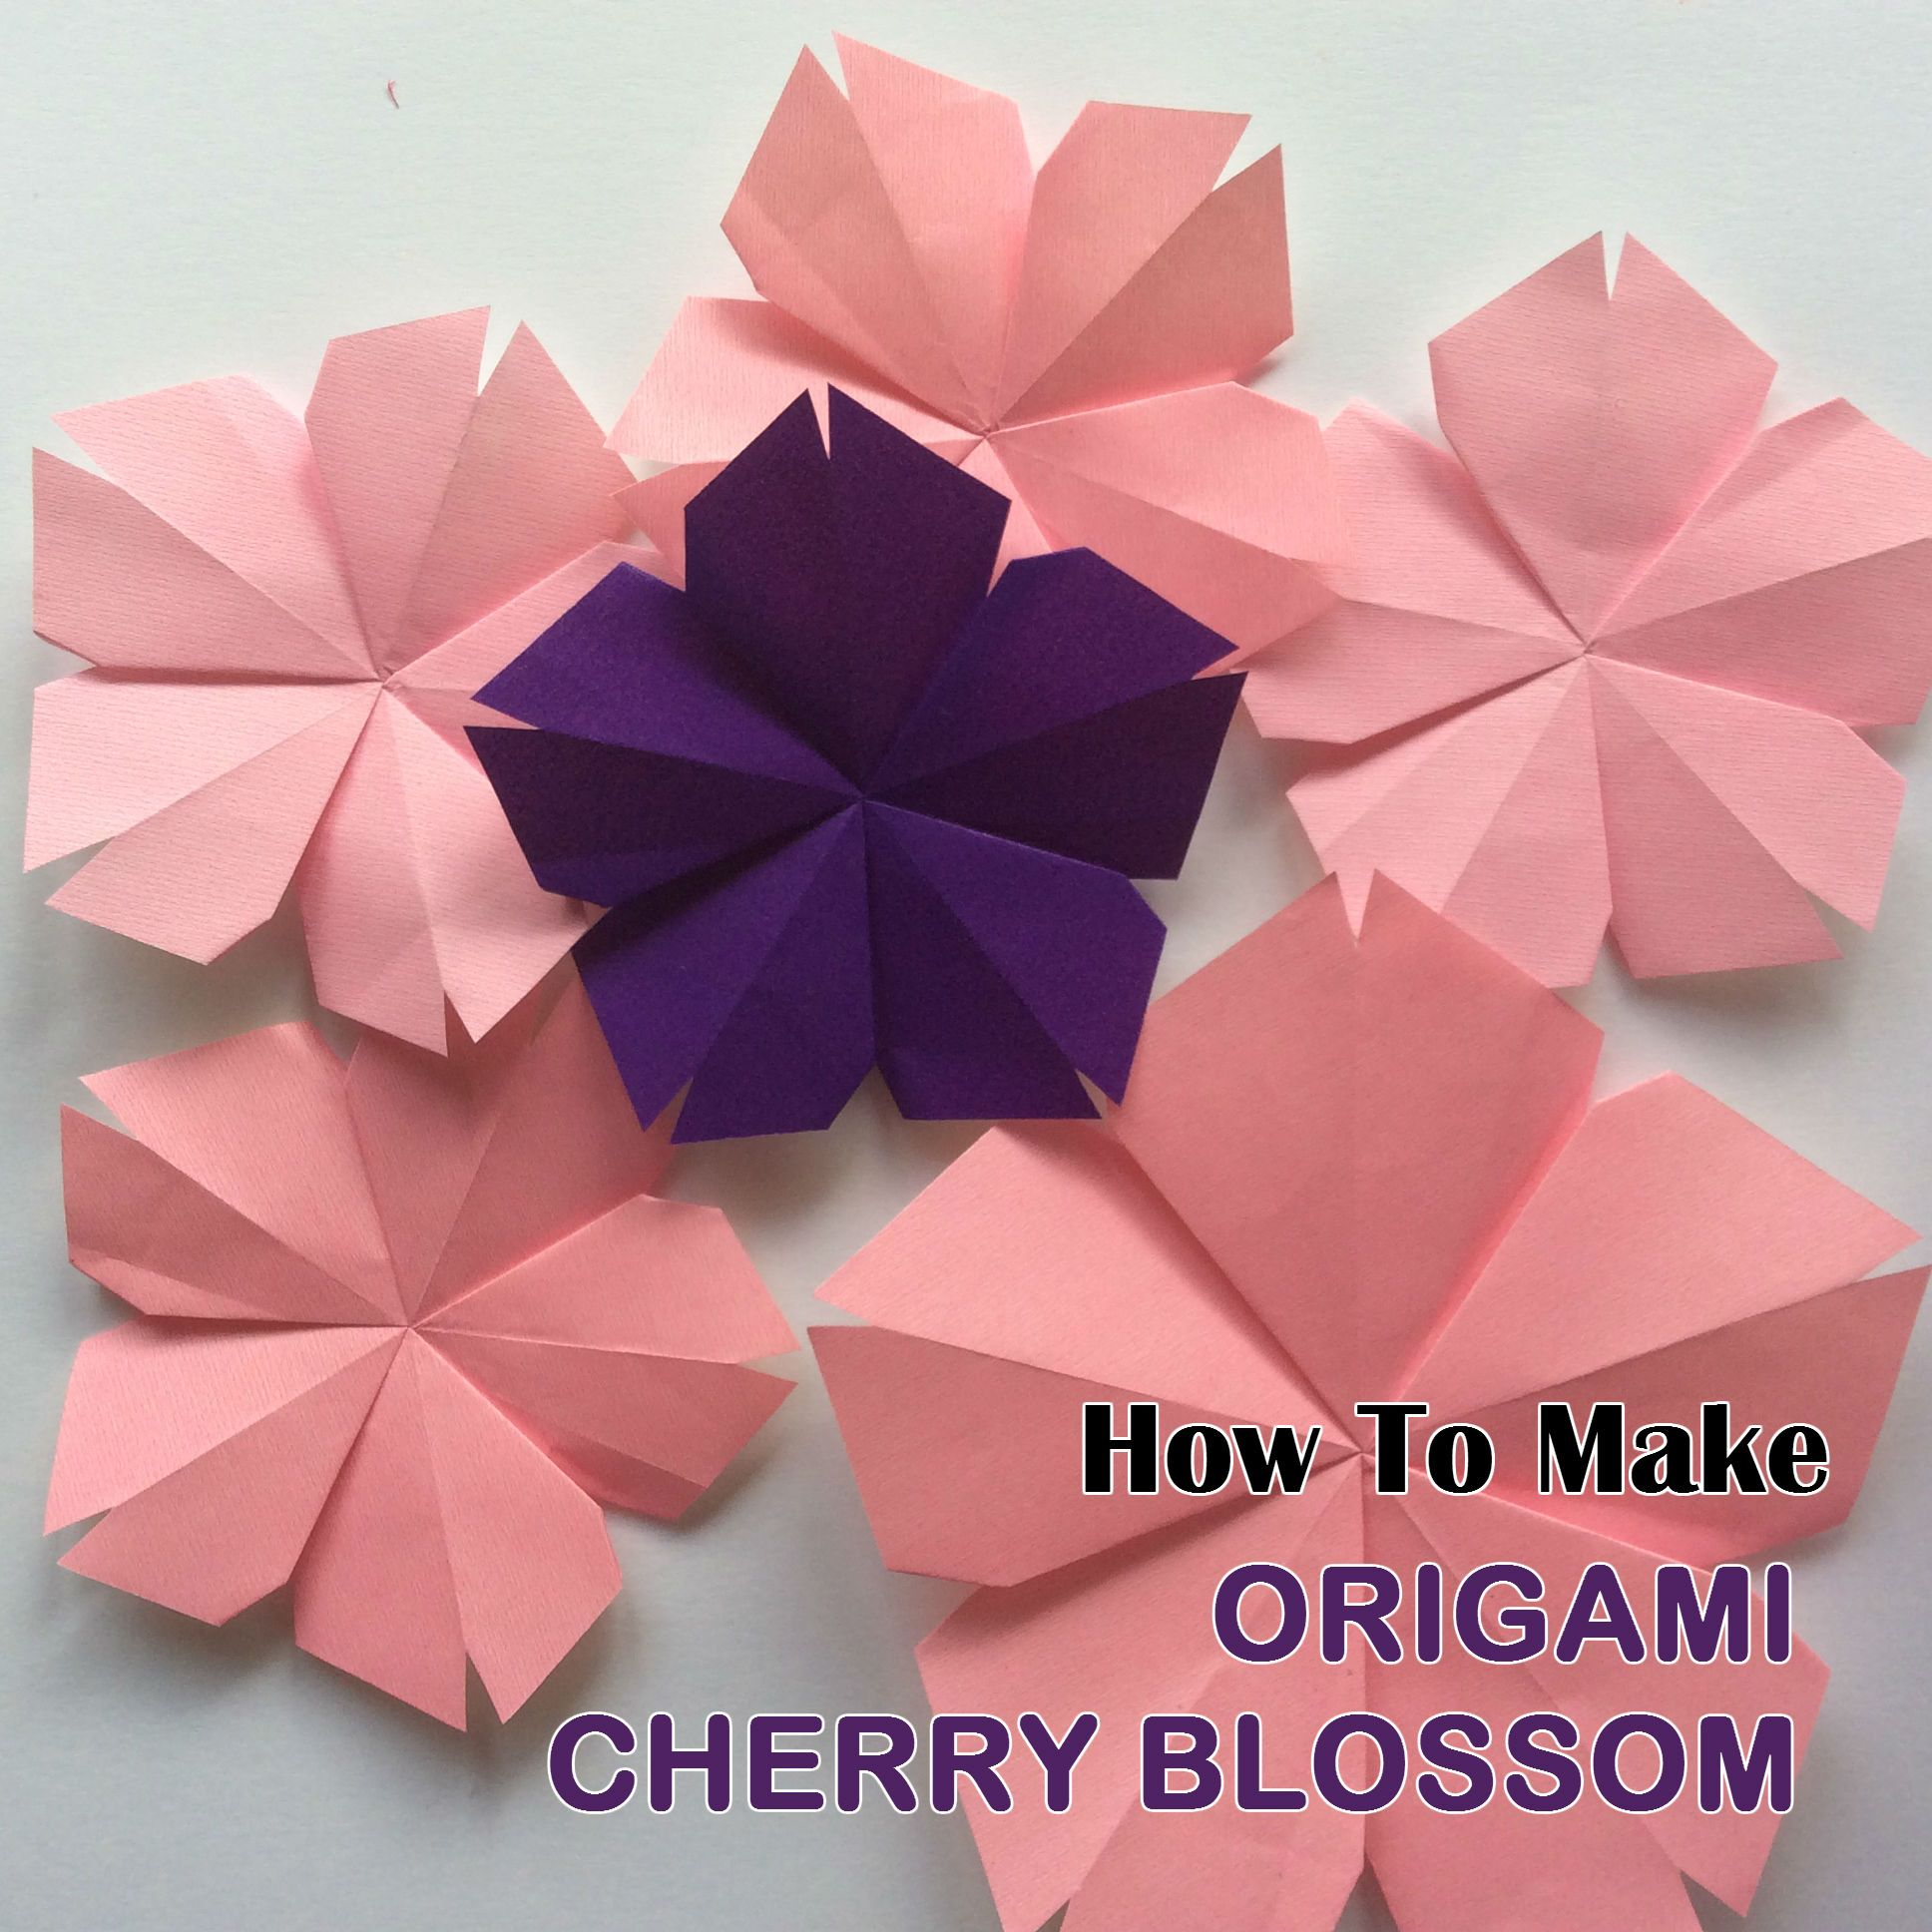 How To Make Origami Cherry Blossom - Easy Origami ... - photo#41